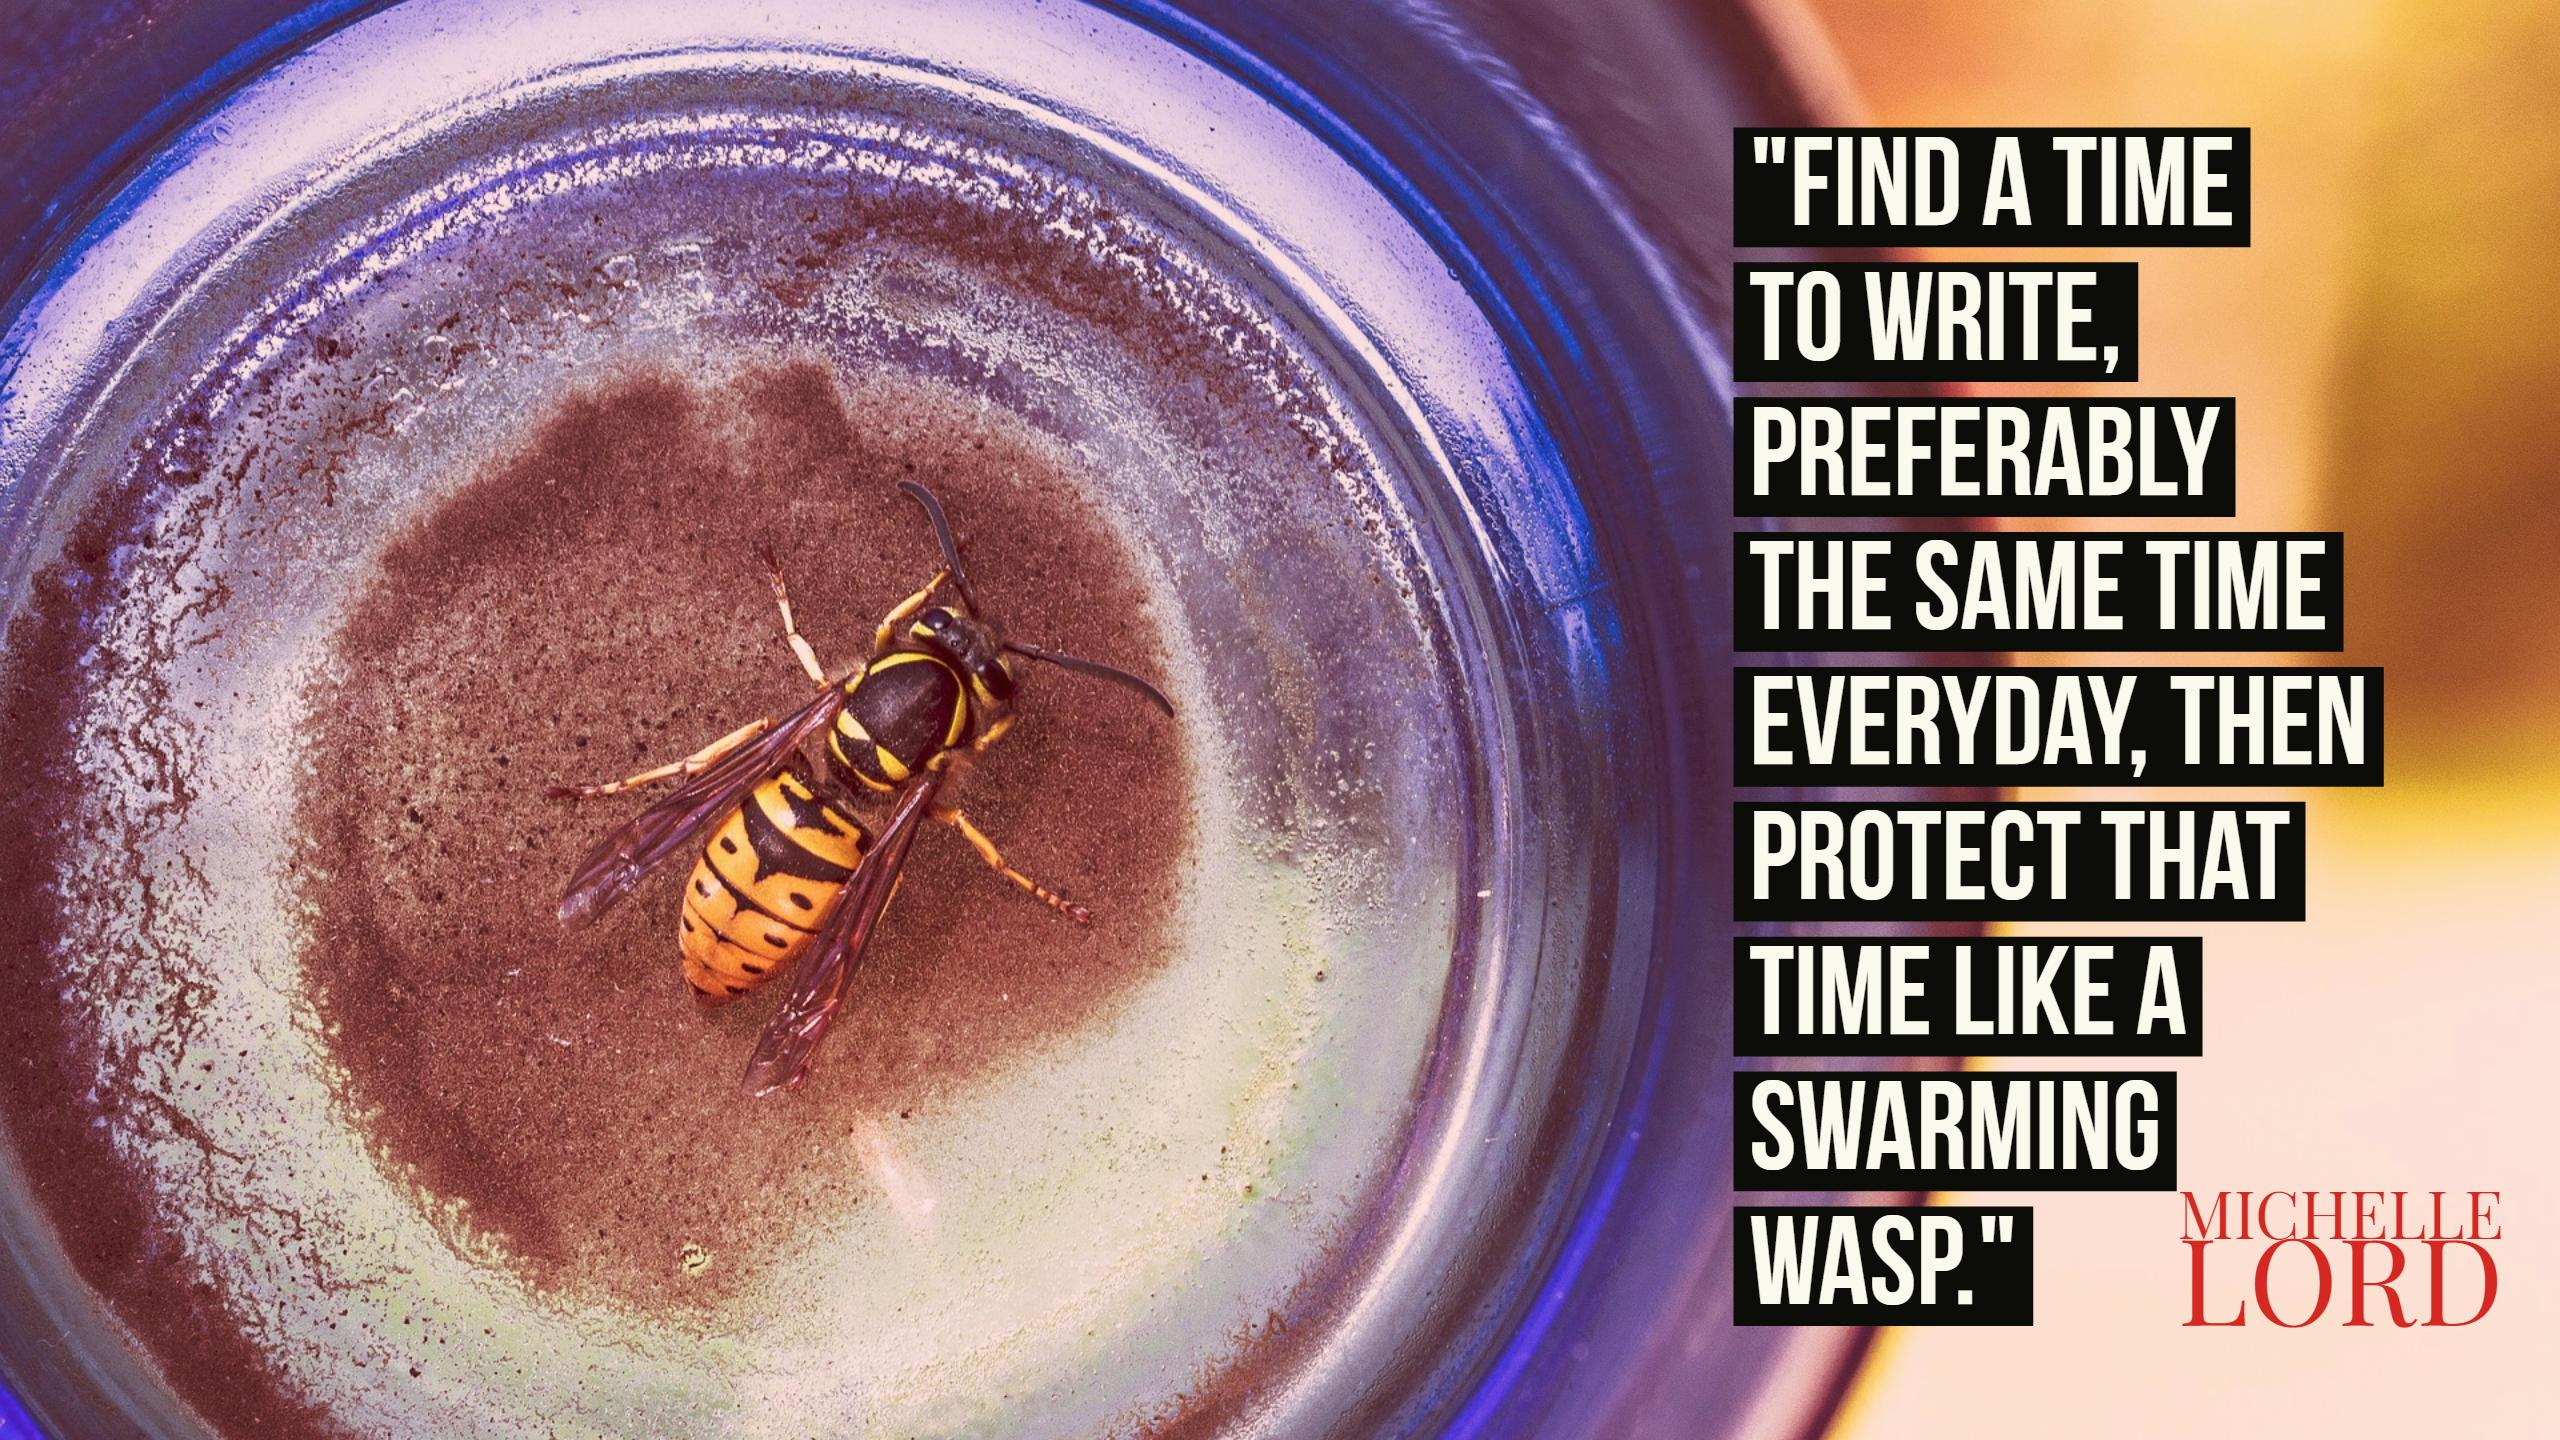 Quote: Find a time to write, preferably the same time everyday, then protect that time like a swarming wasp. ~ Michelle Lord